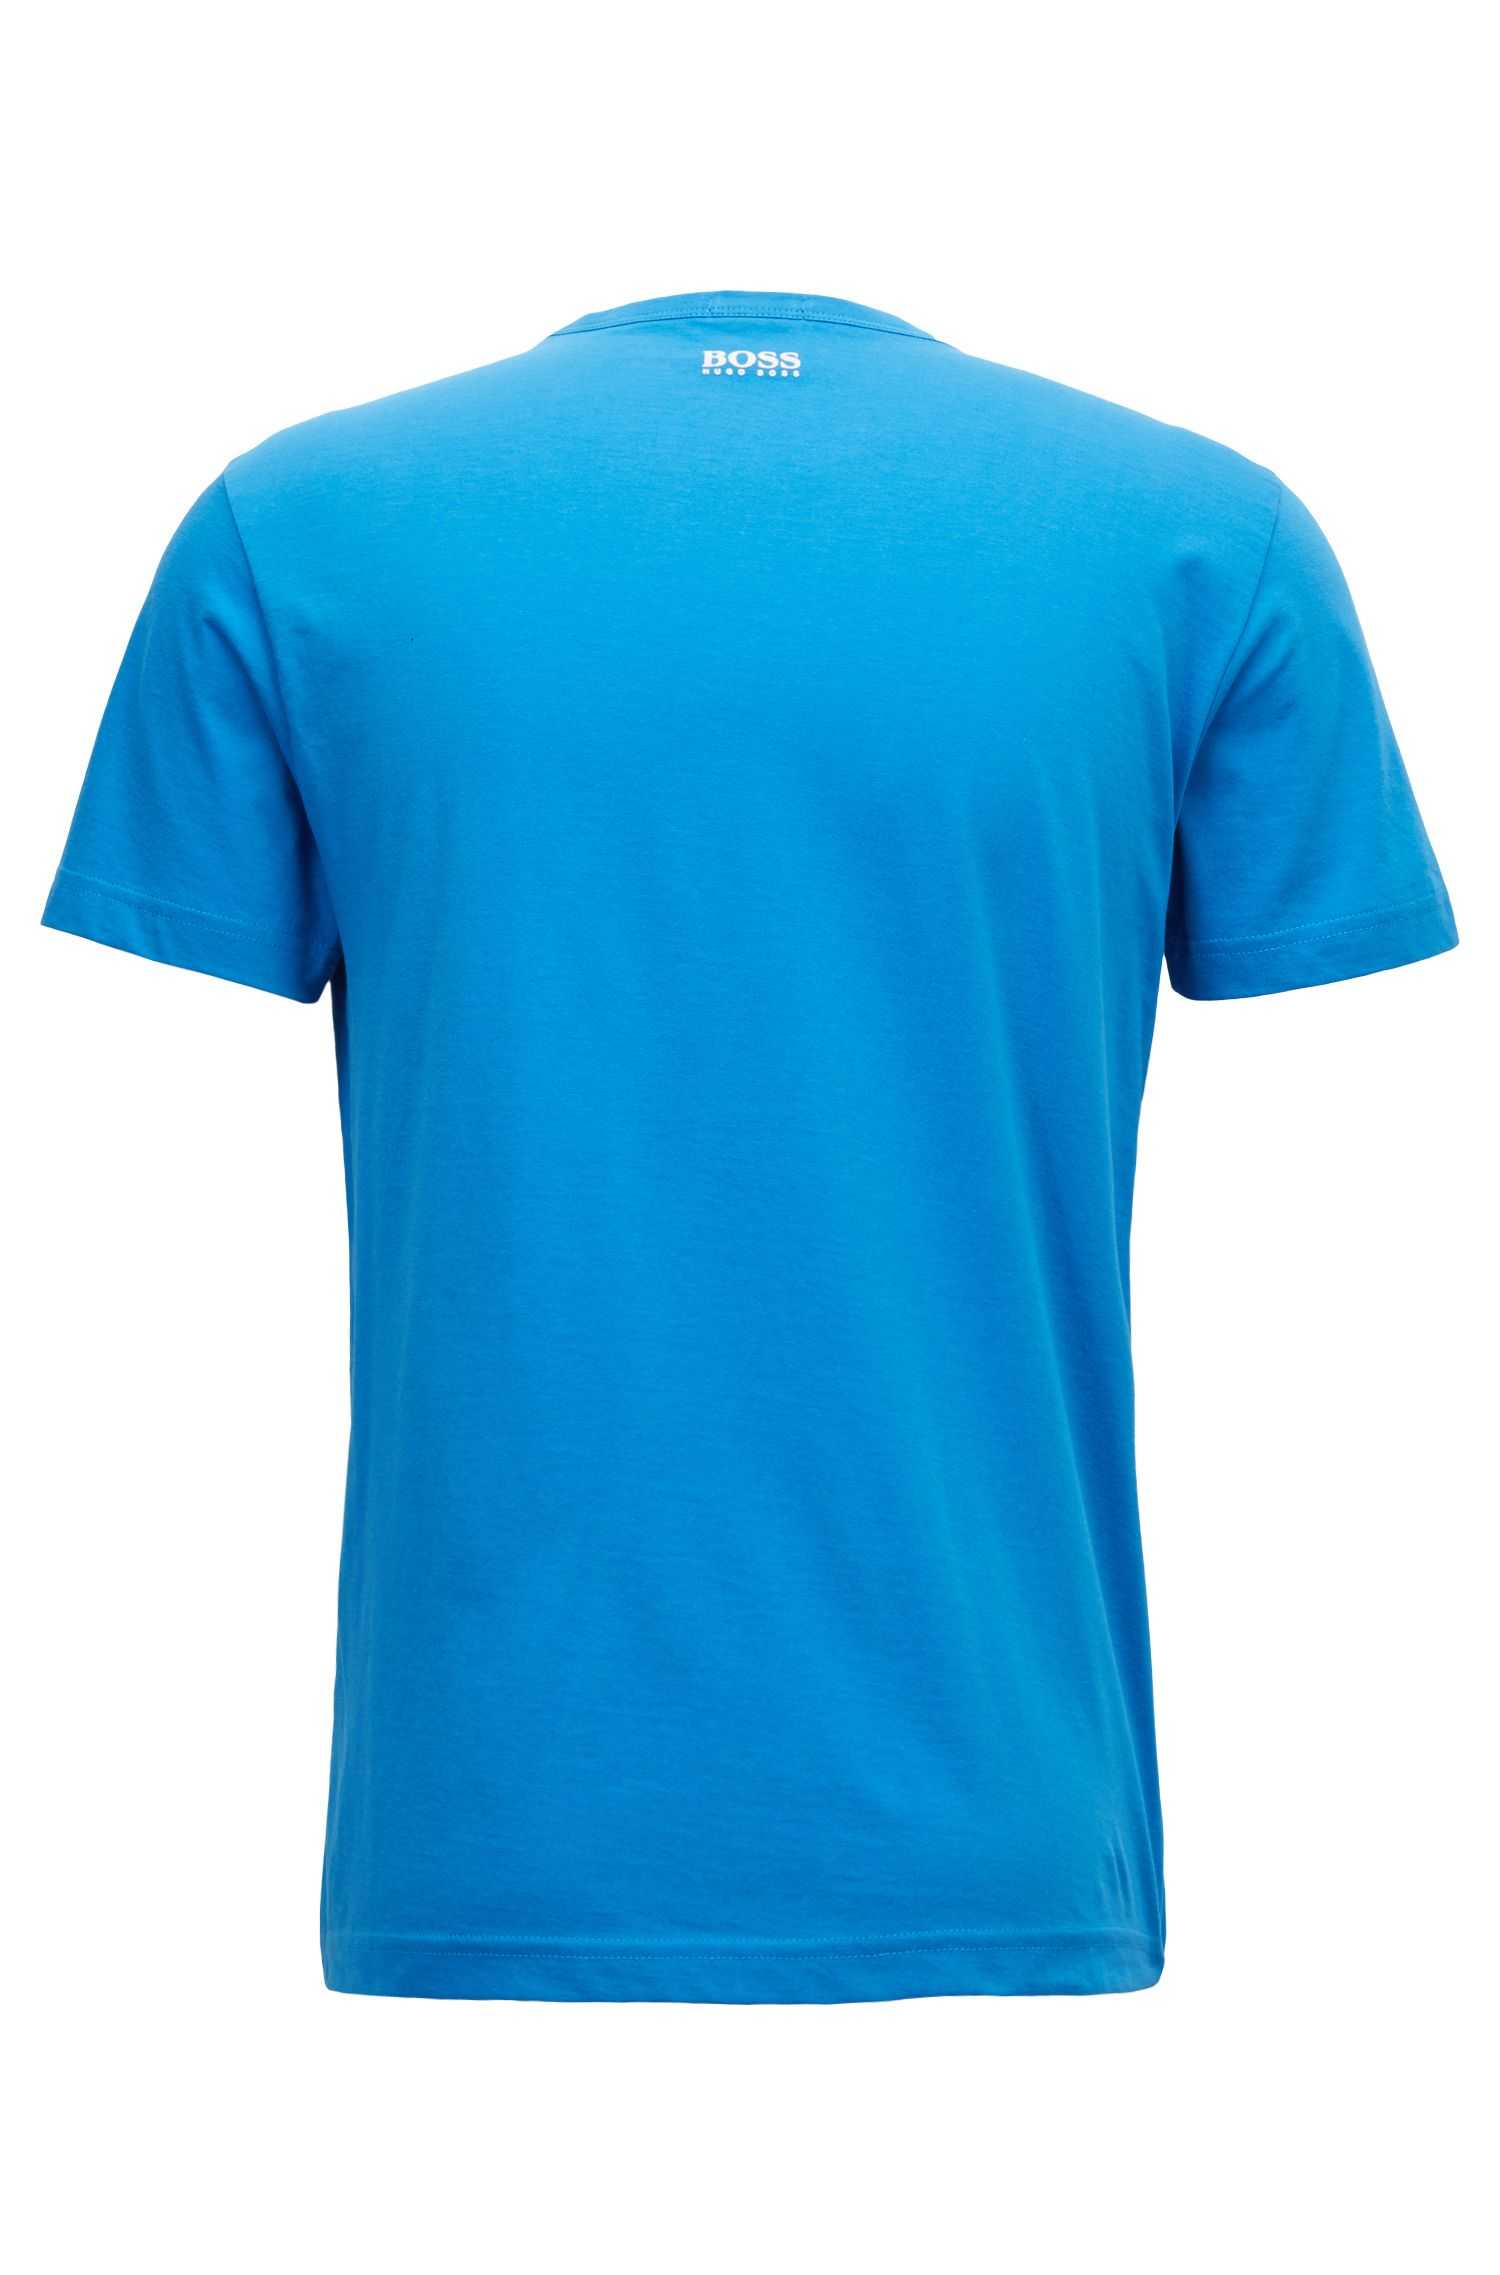 Crew-neck T-shirt in cotton with flock-print logo, Turquoise